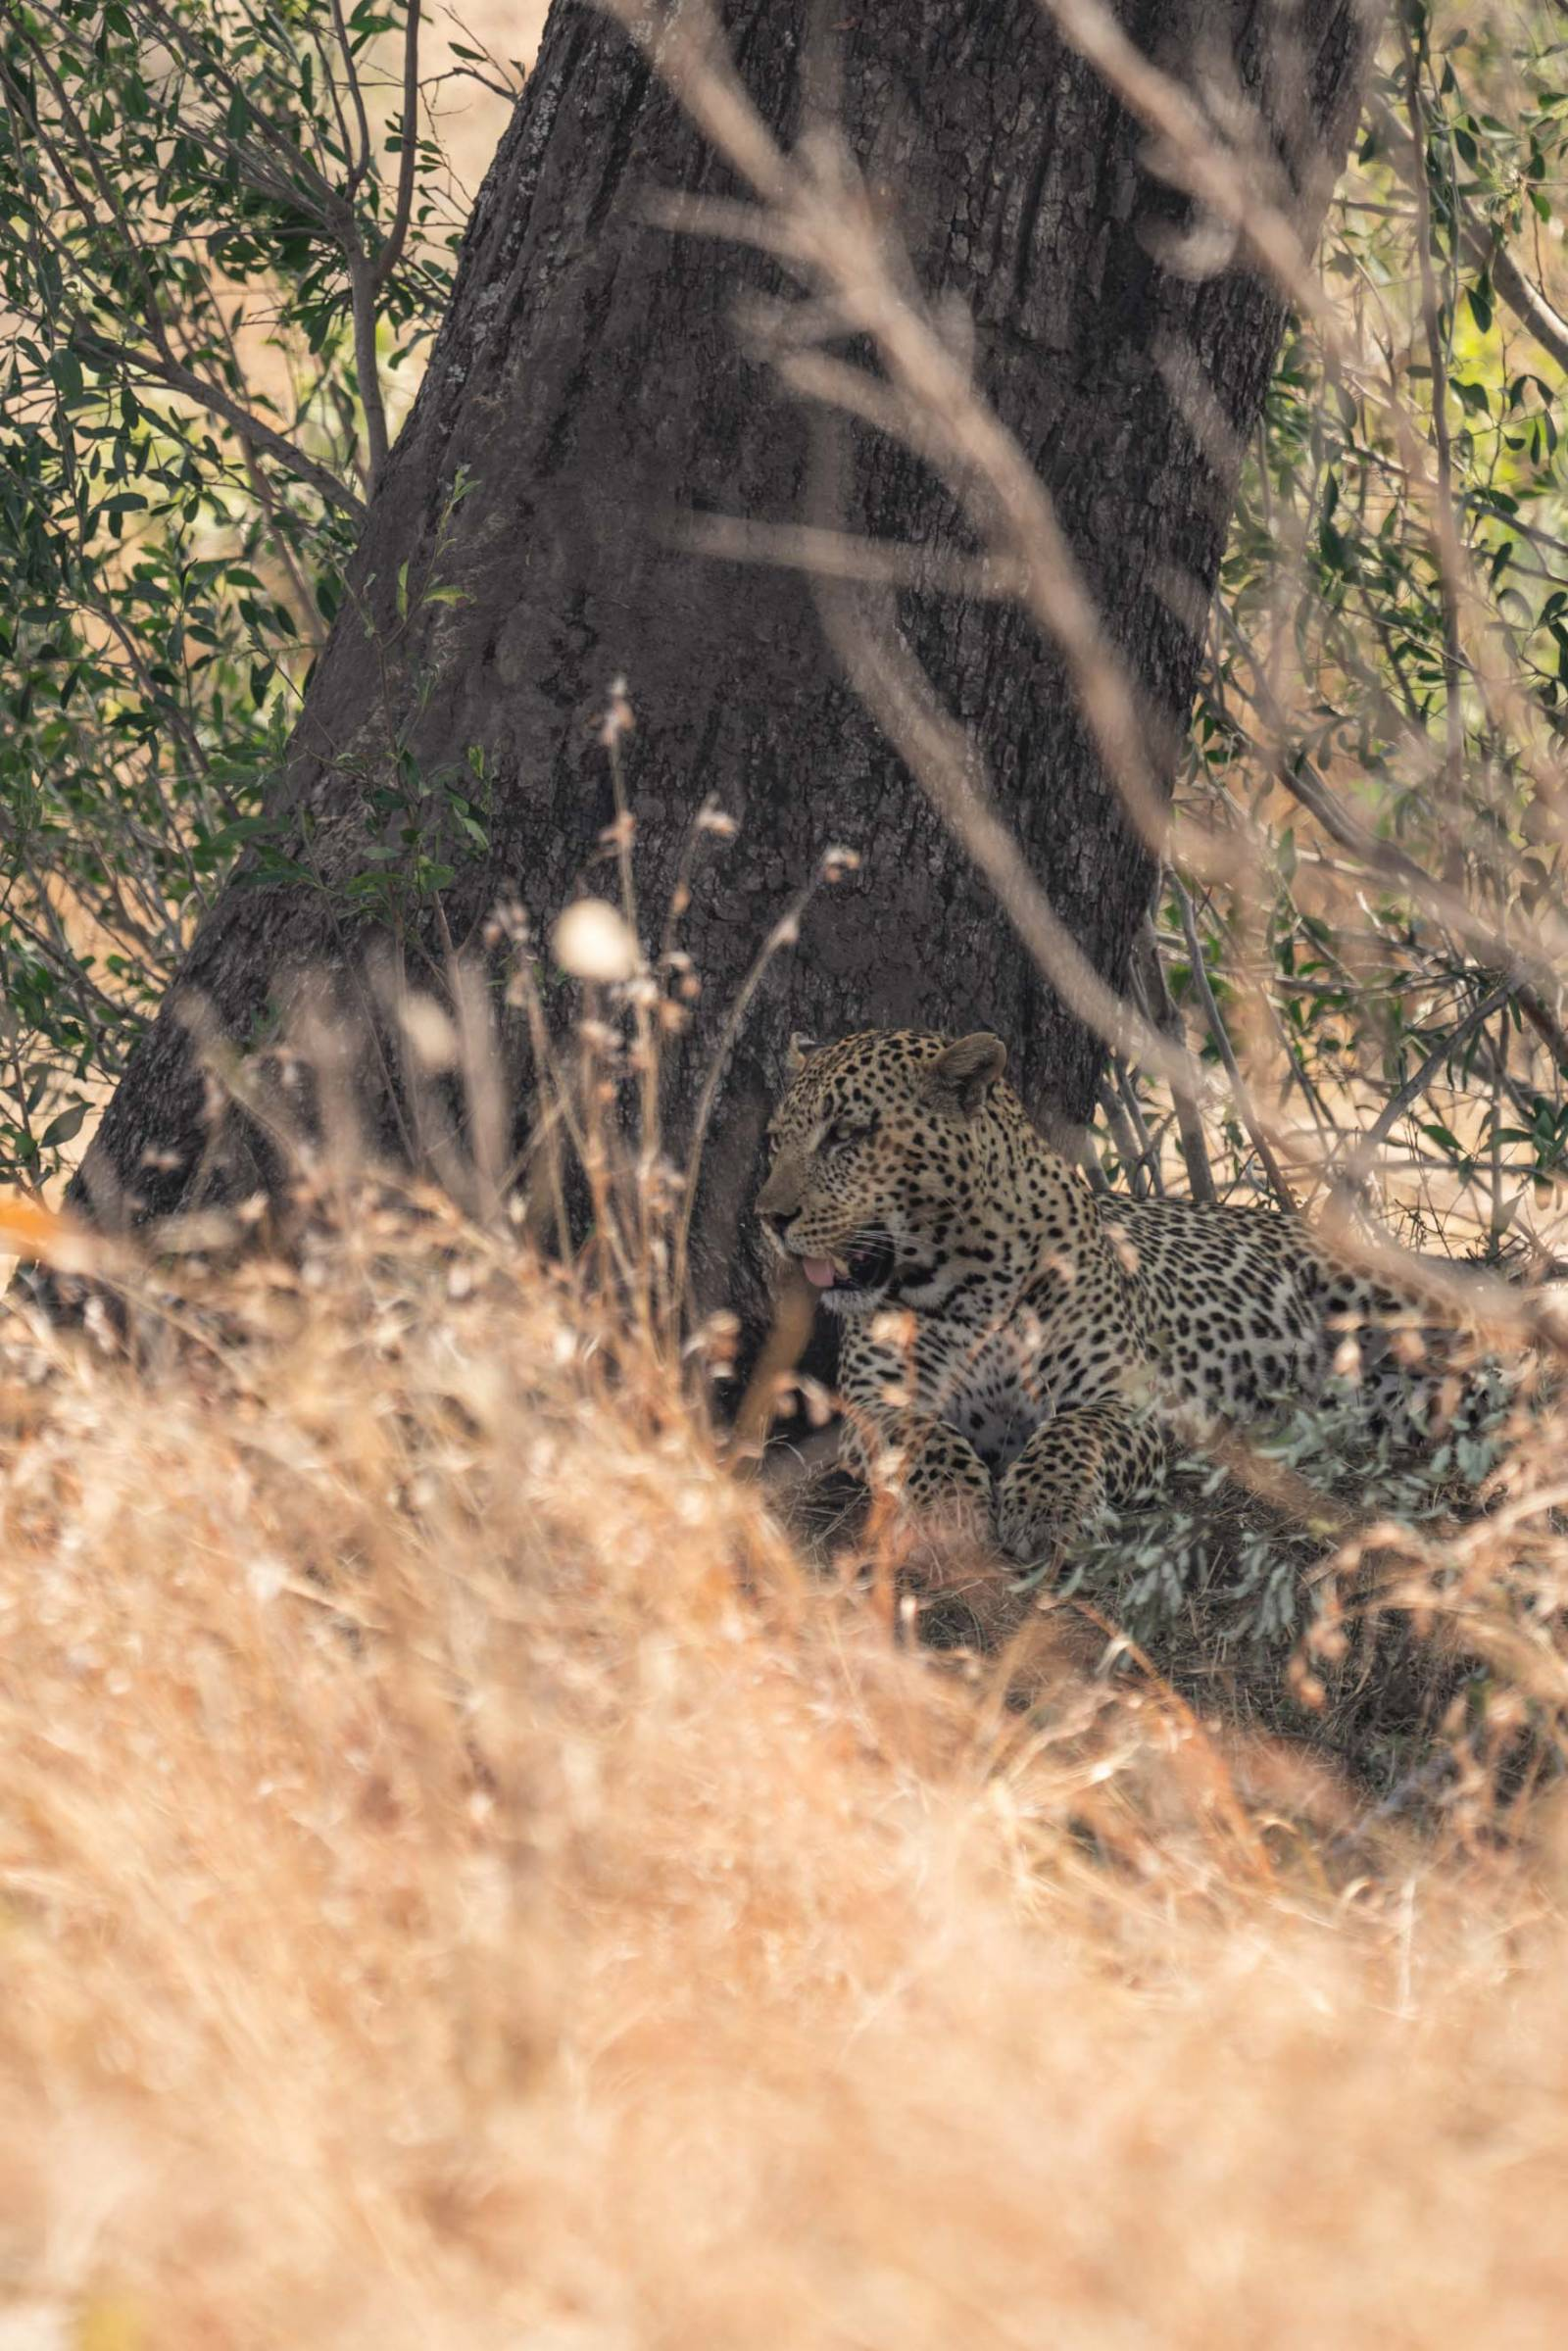 Leopards in Kruger National Park